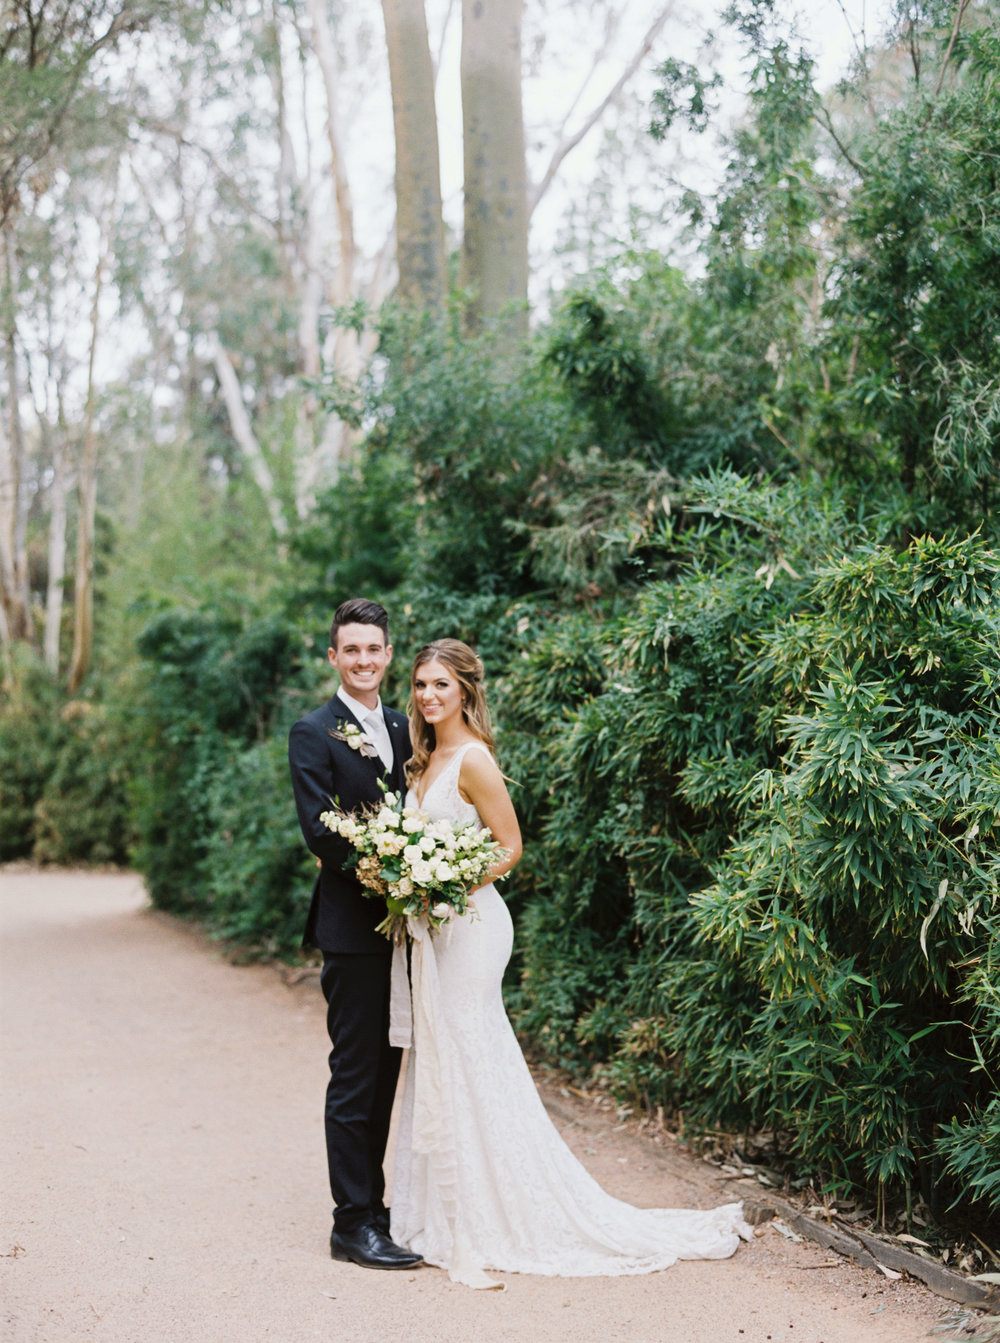 00022- Taronga Zoo Wedding Australia Fine Art Film Photographer Sheri McMahon.jpg